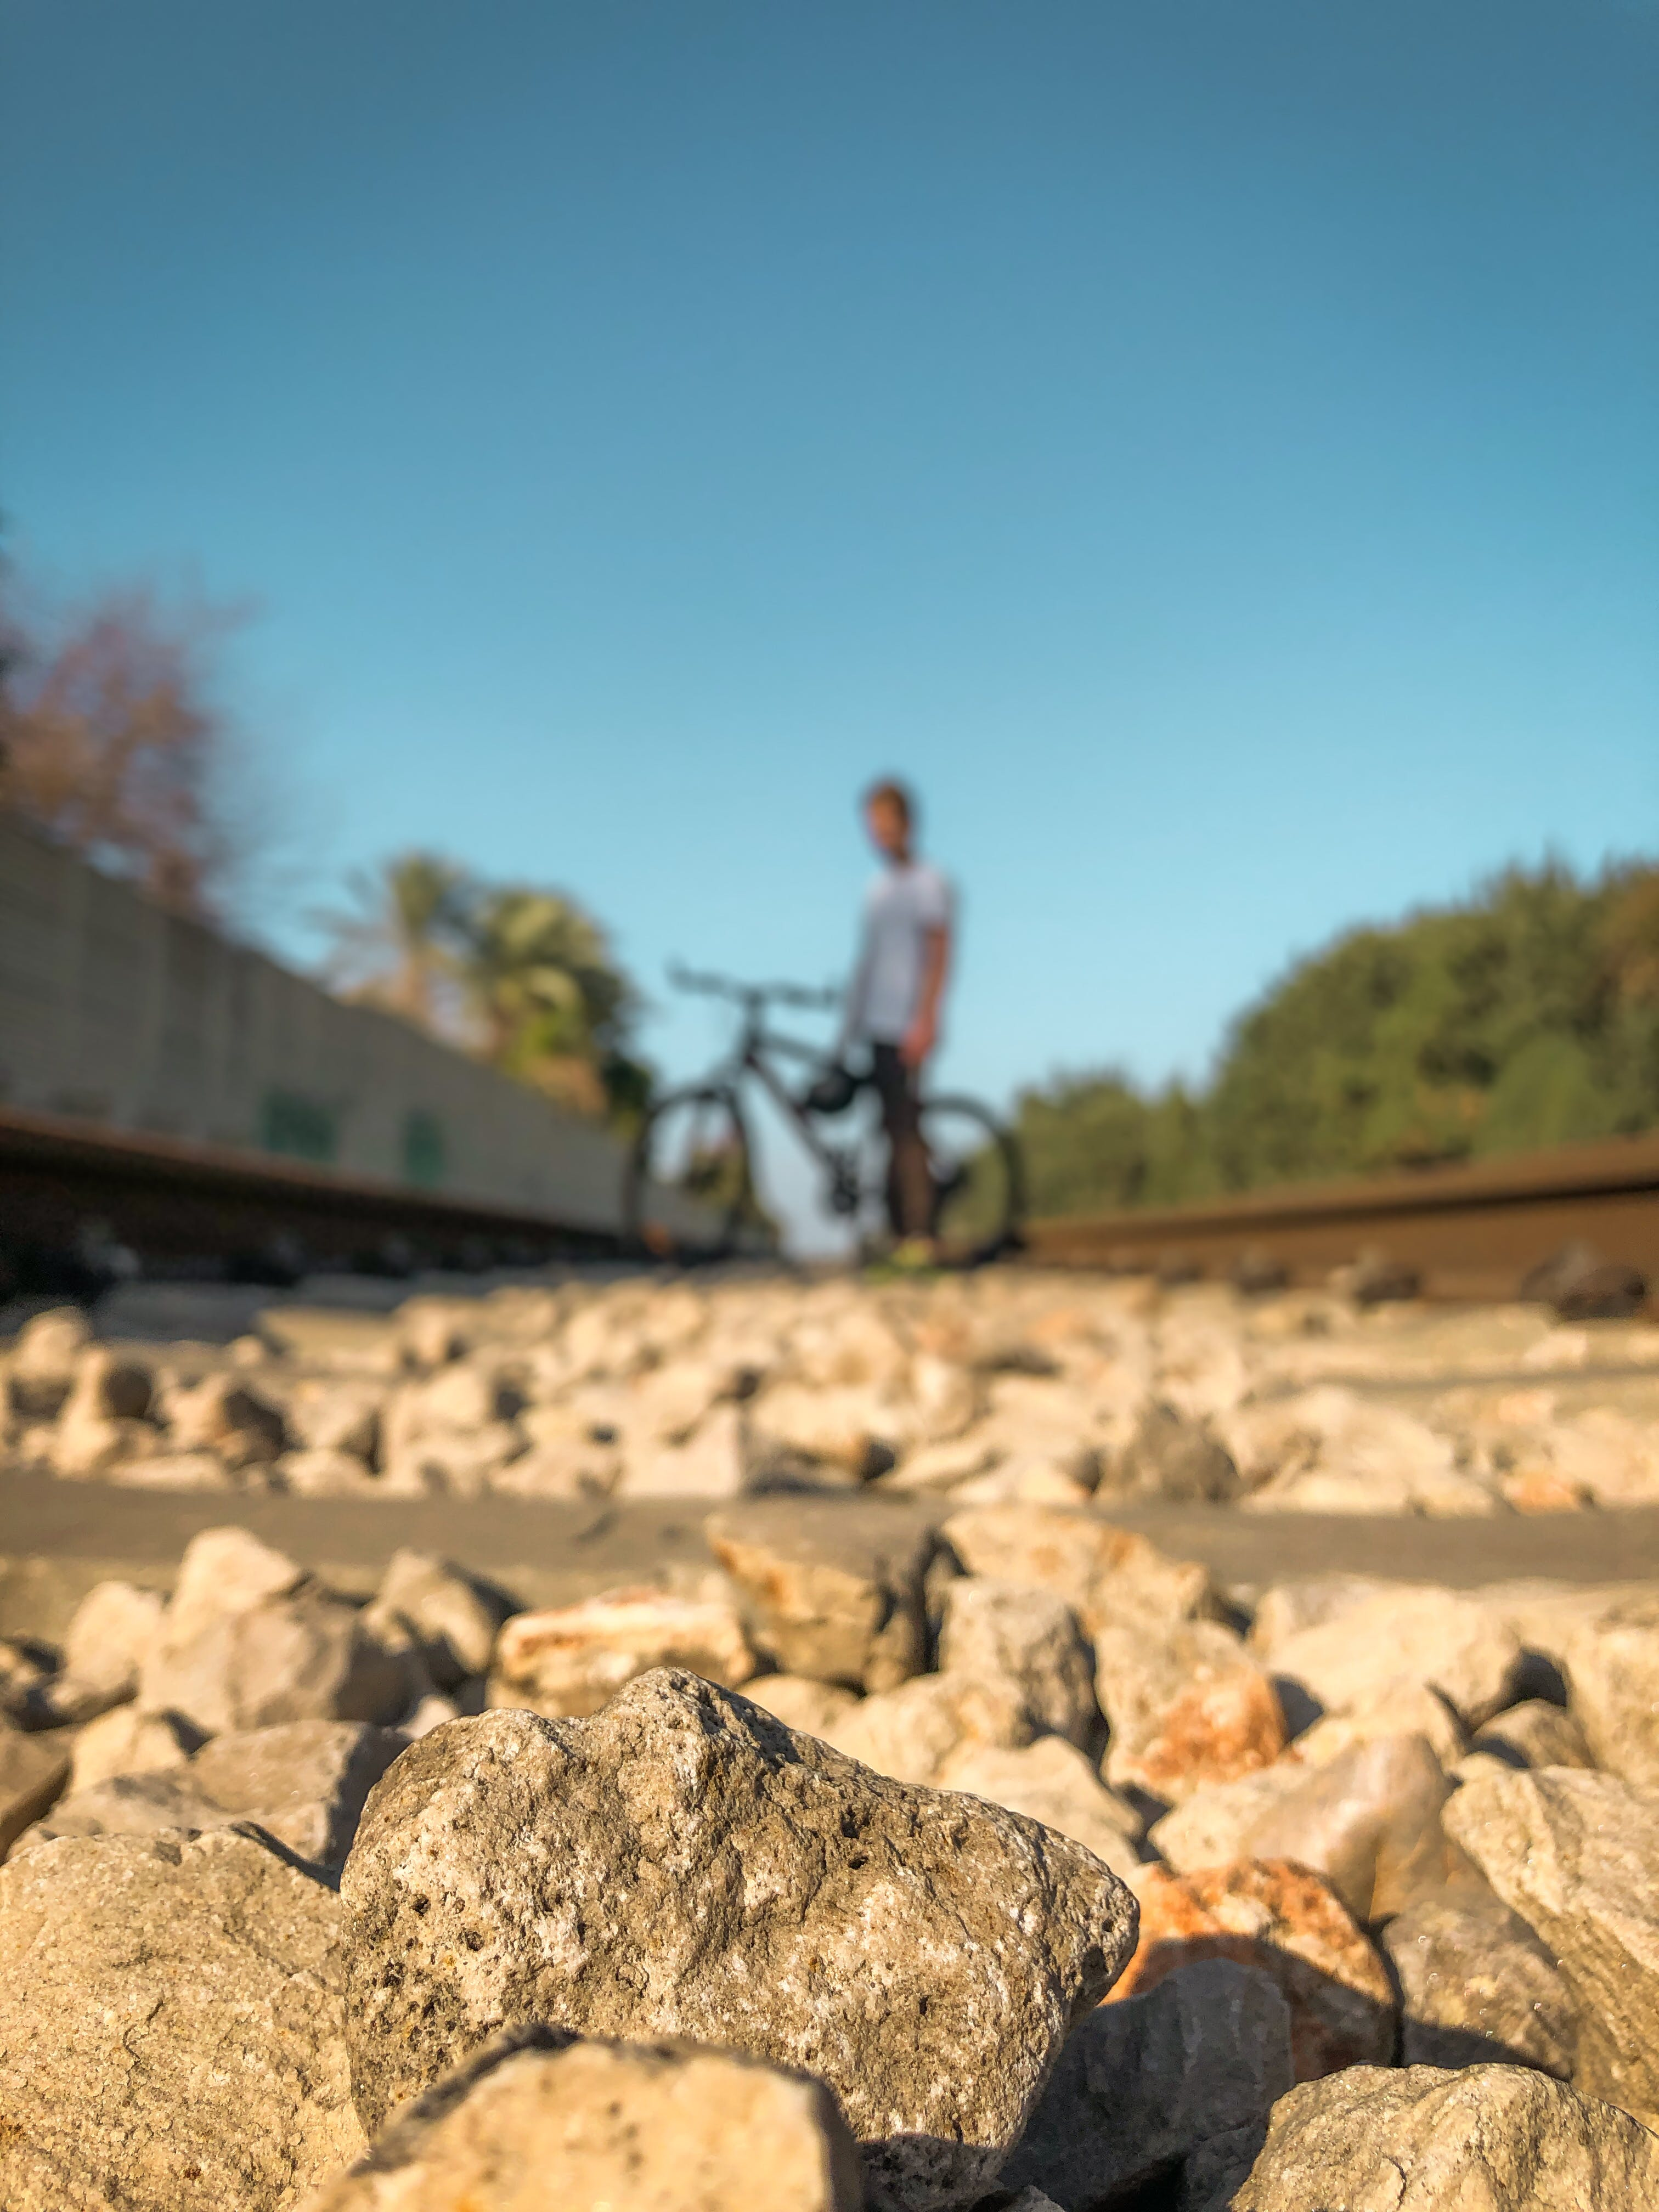 Free stock photo of bicycle, blur, blurred background, depth of field